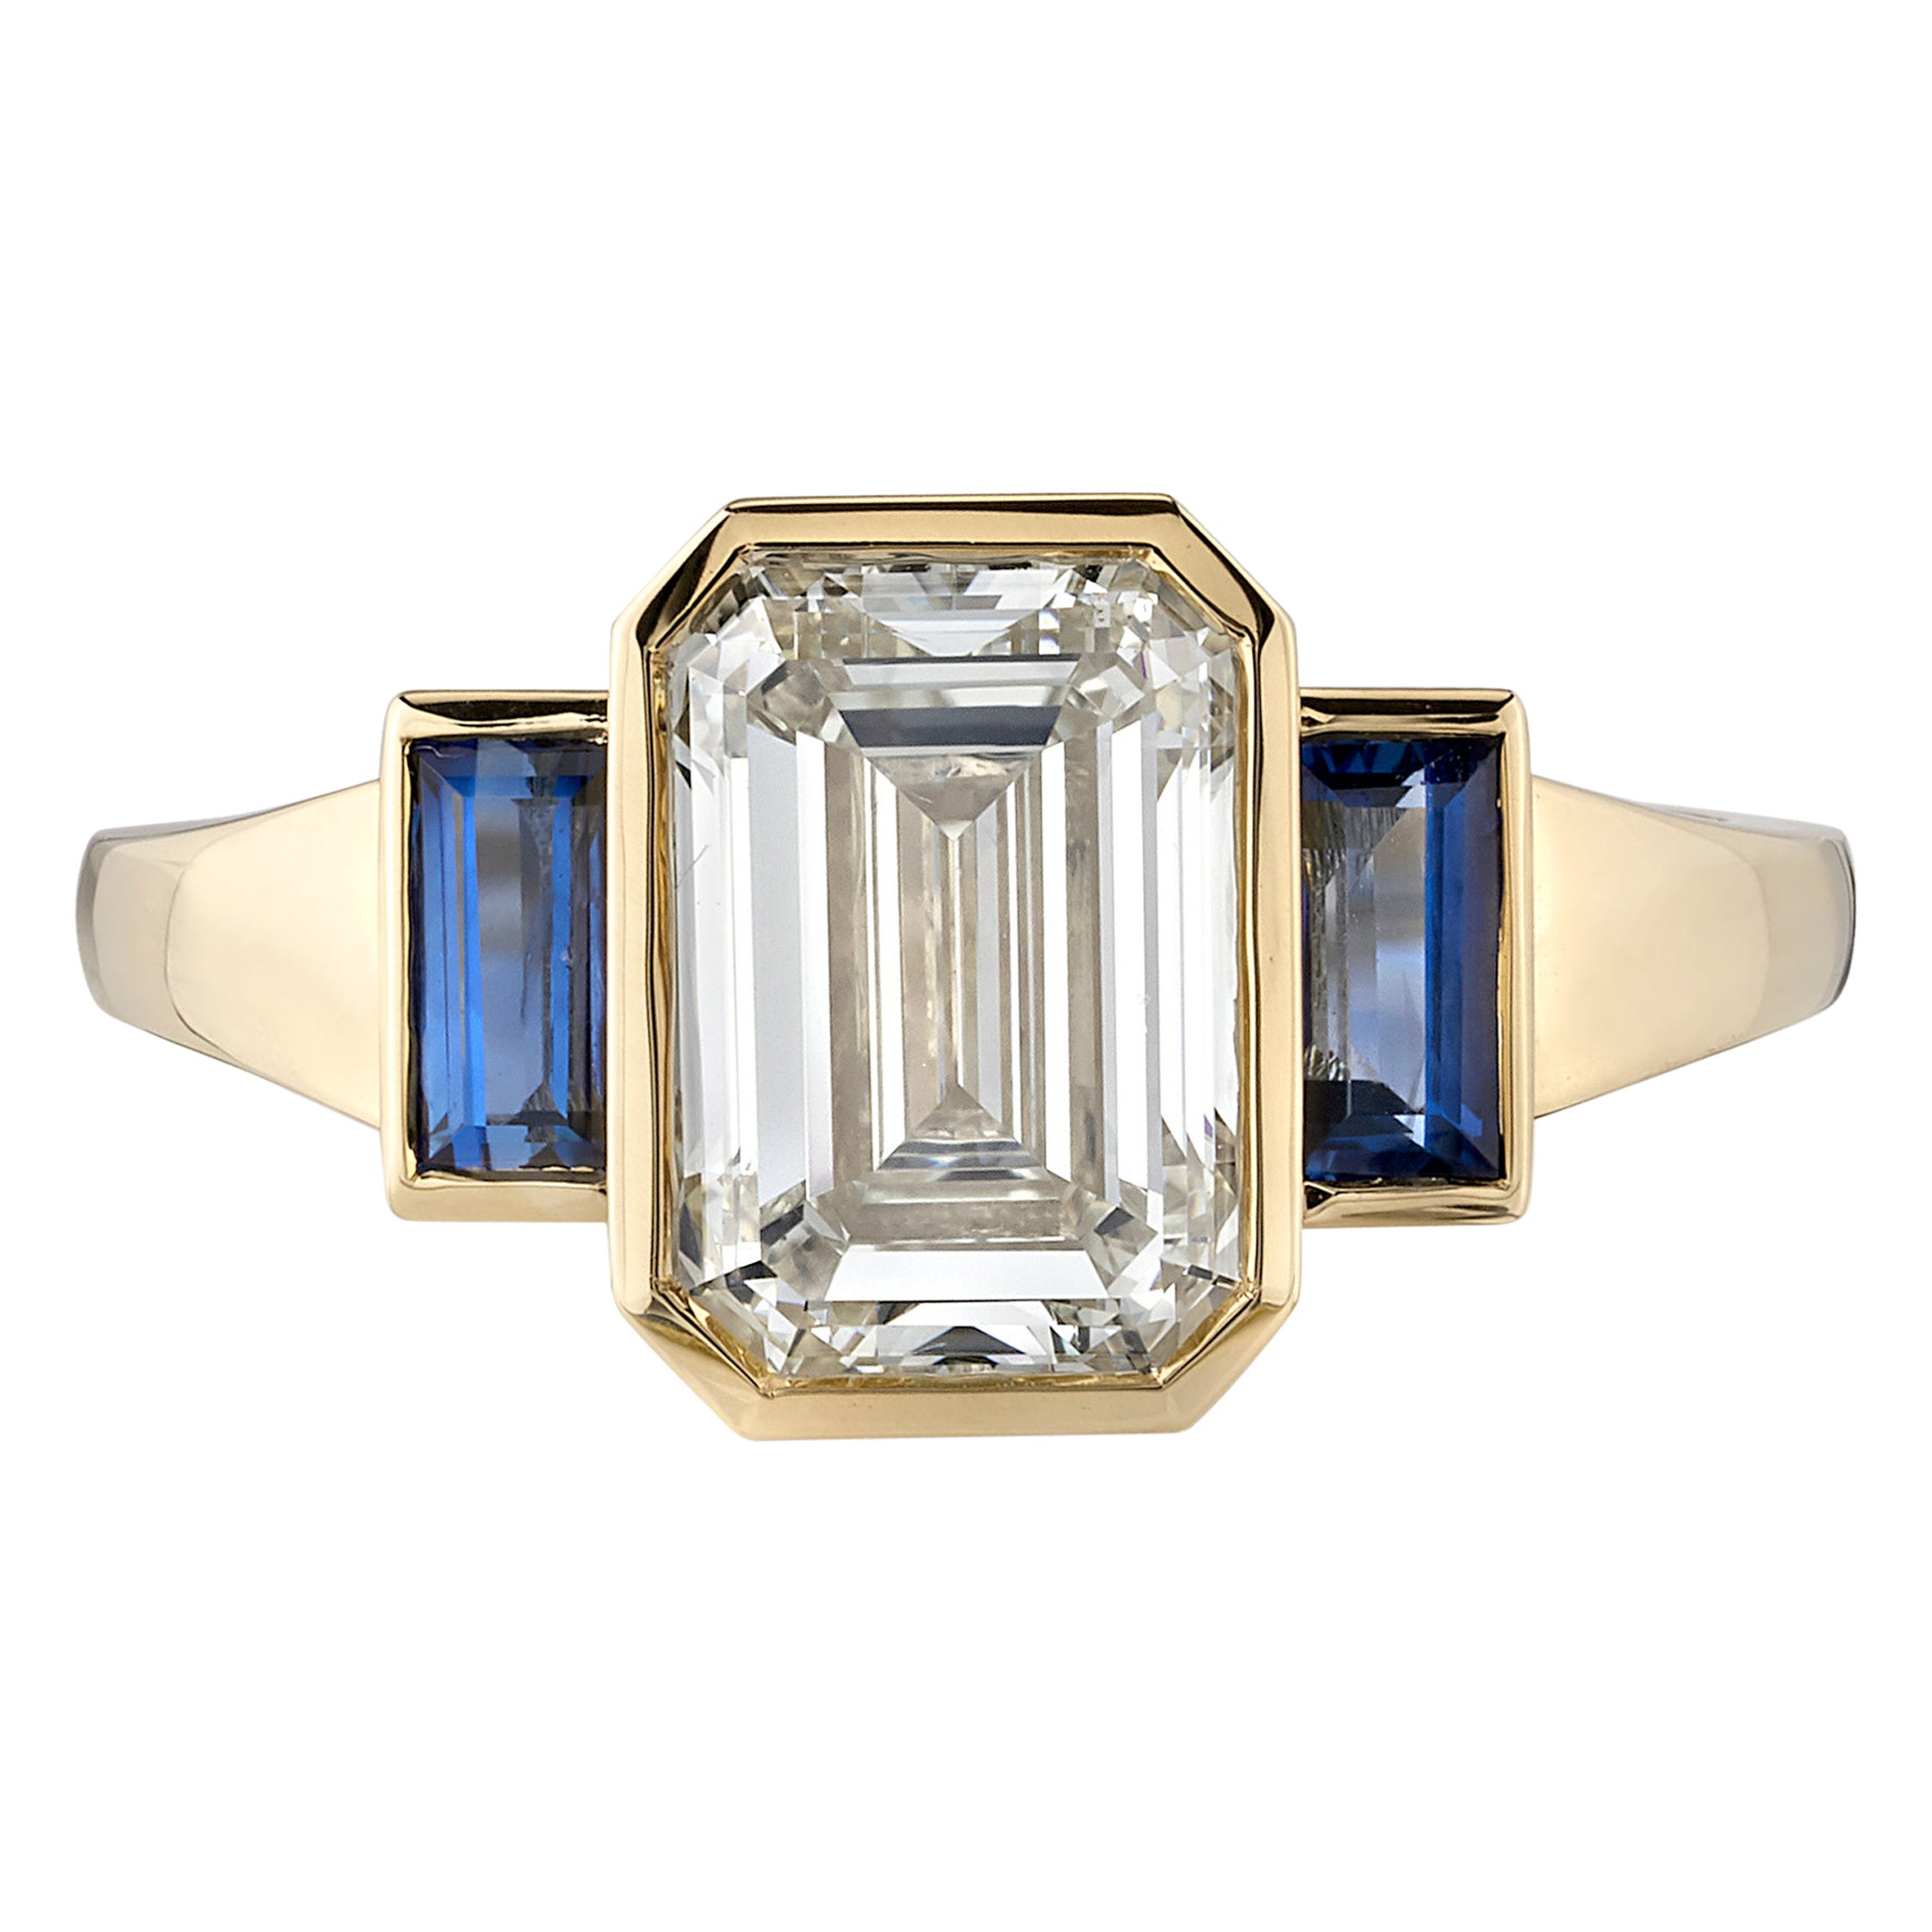 2.23 Carat Emerald Cut Diamond Set in a Handcrafted Yellow Gold Engagement Ring